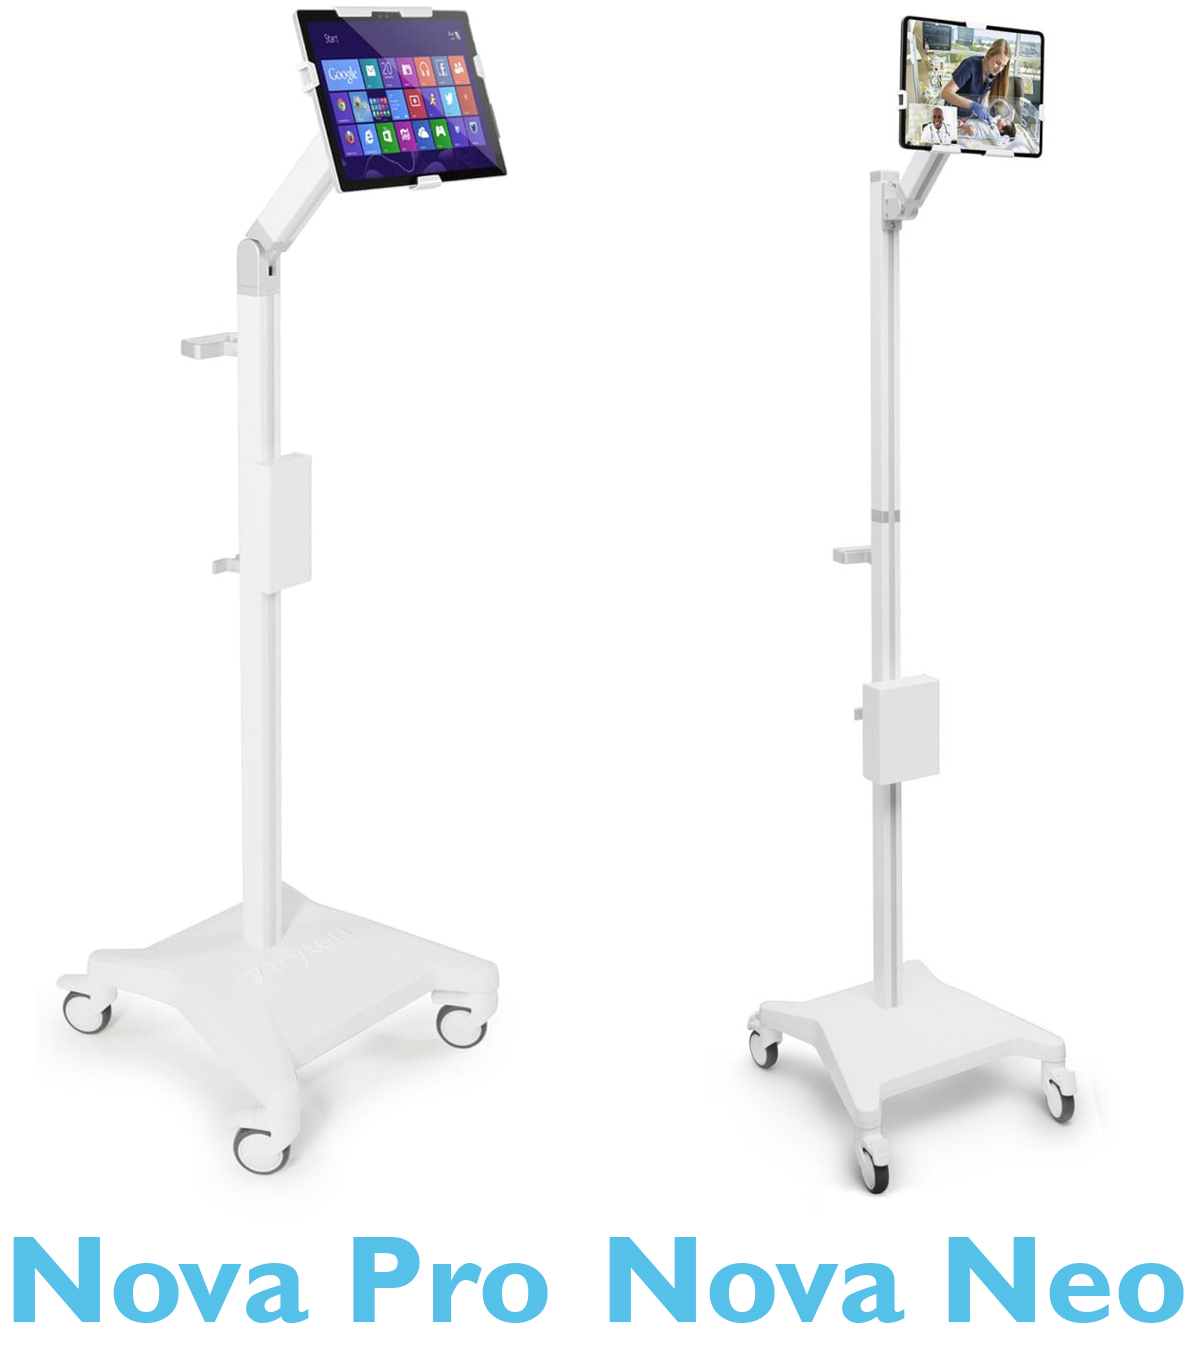 Find the Nova cart that's right for you!